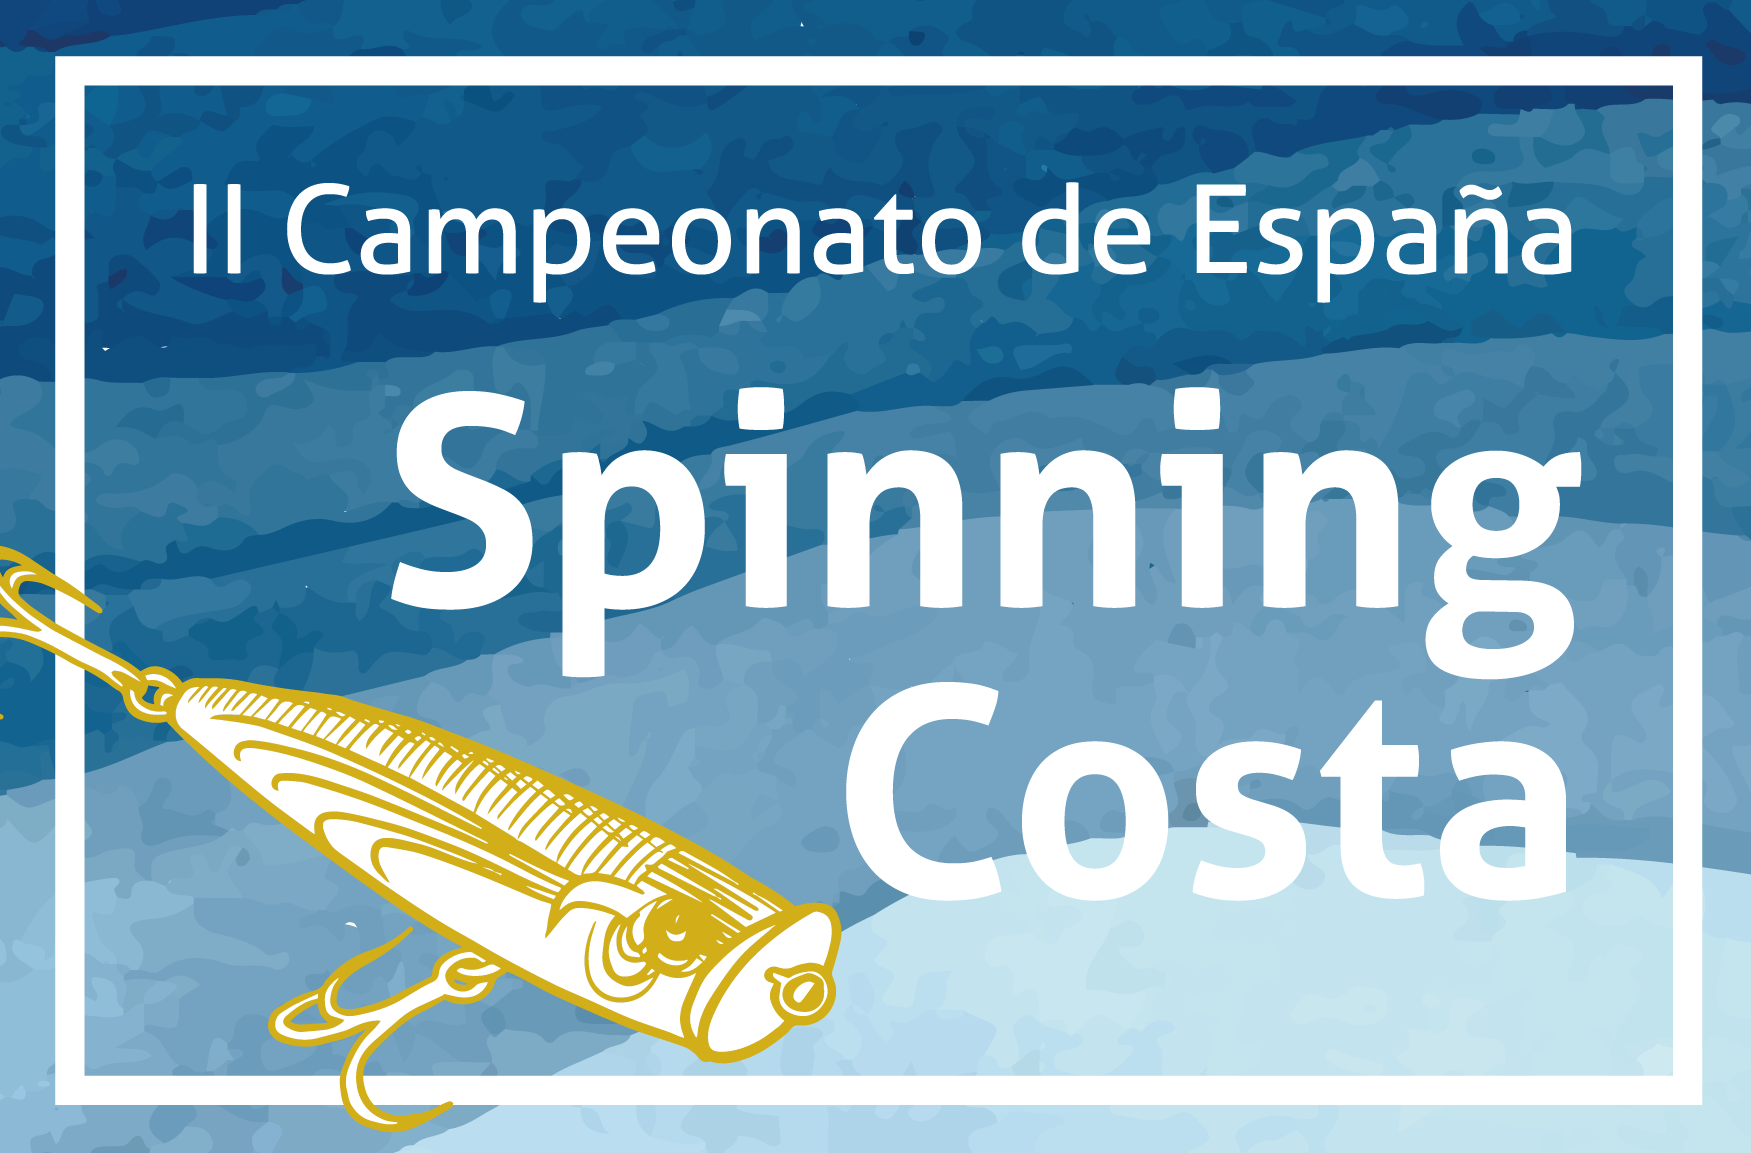 Spinnig Costa